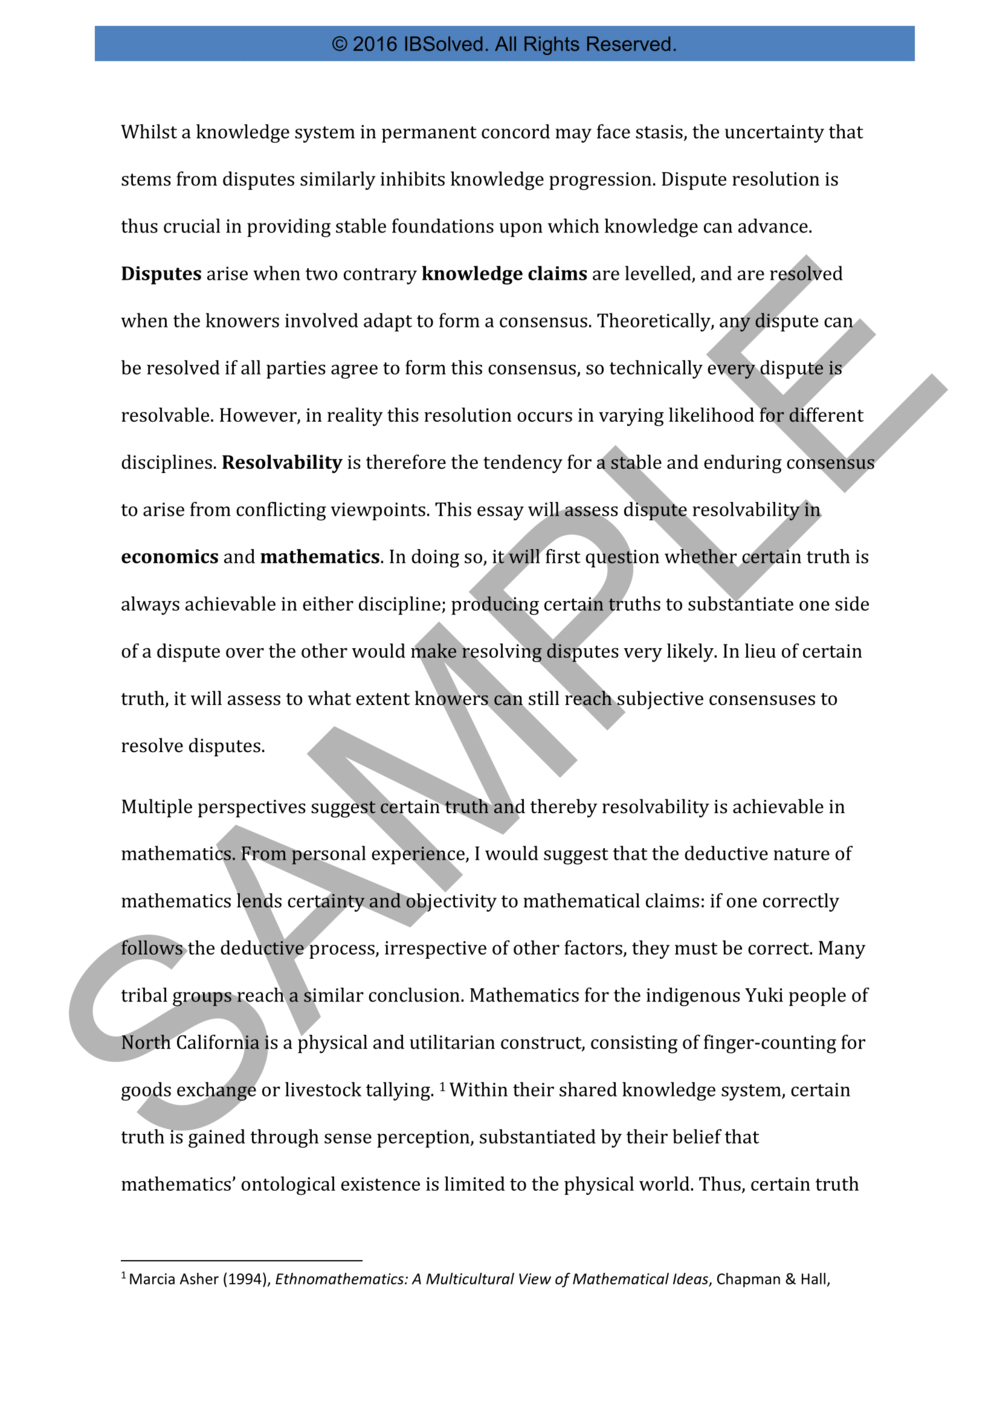 Thesis Statement Essay Tok Essay Q  November   Samples Of Persuasive Essays For High School Students also Essays On Science And Religion Ib Solved Grade  Notes Tutoring And Assessments  Ib Notes And  Thesis Statement Persuasive Essay